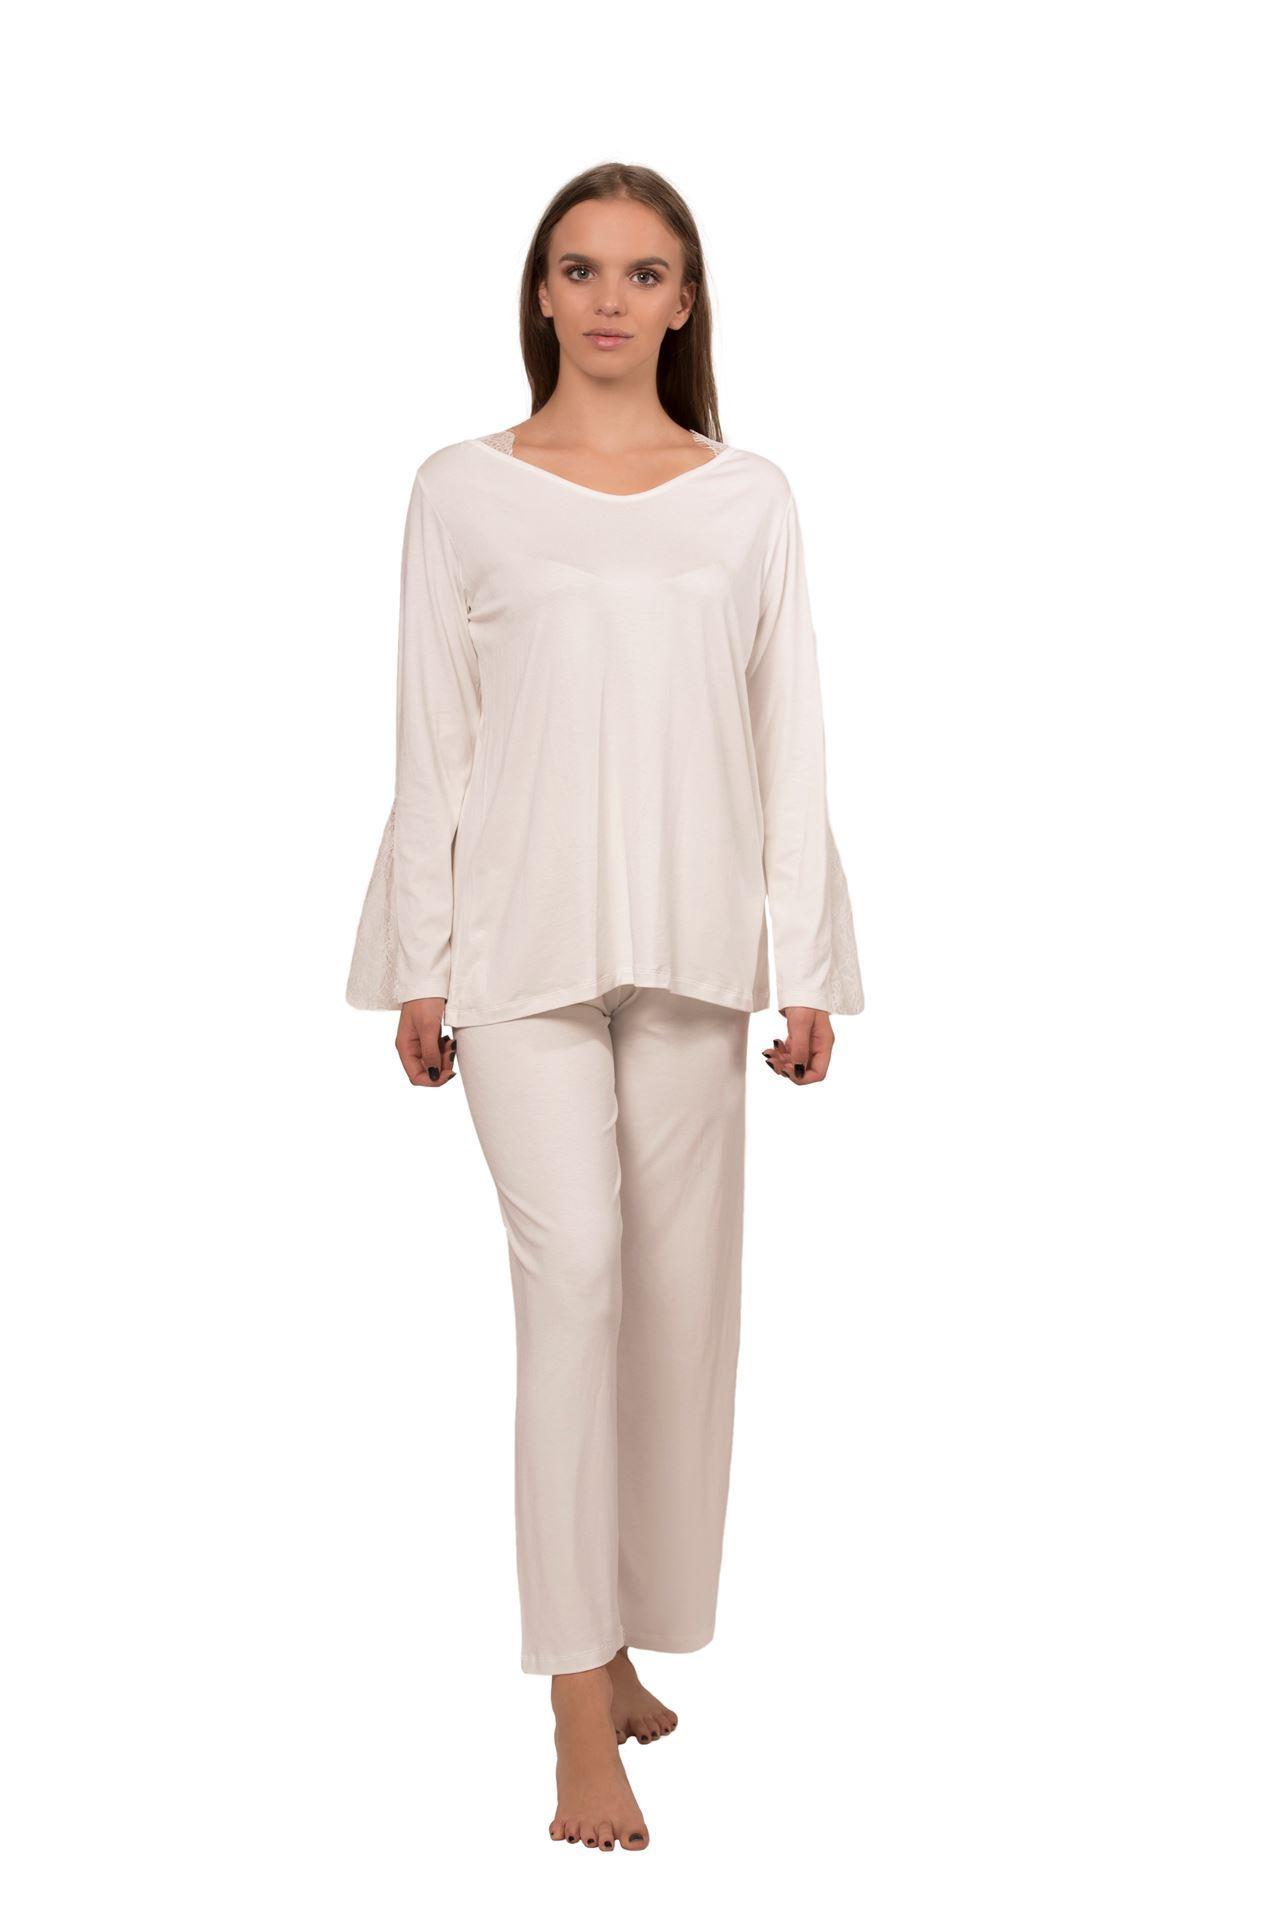 Picture of Women's viscose pajamas with lace on the sleeves